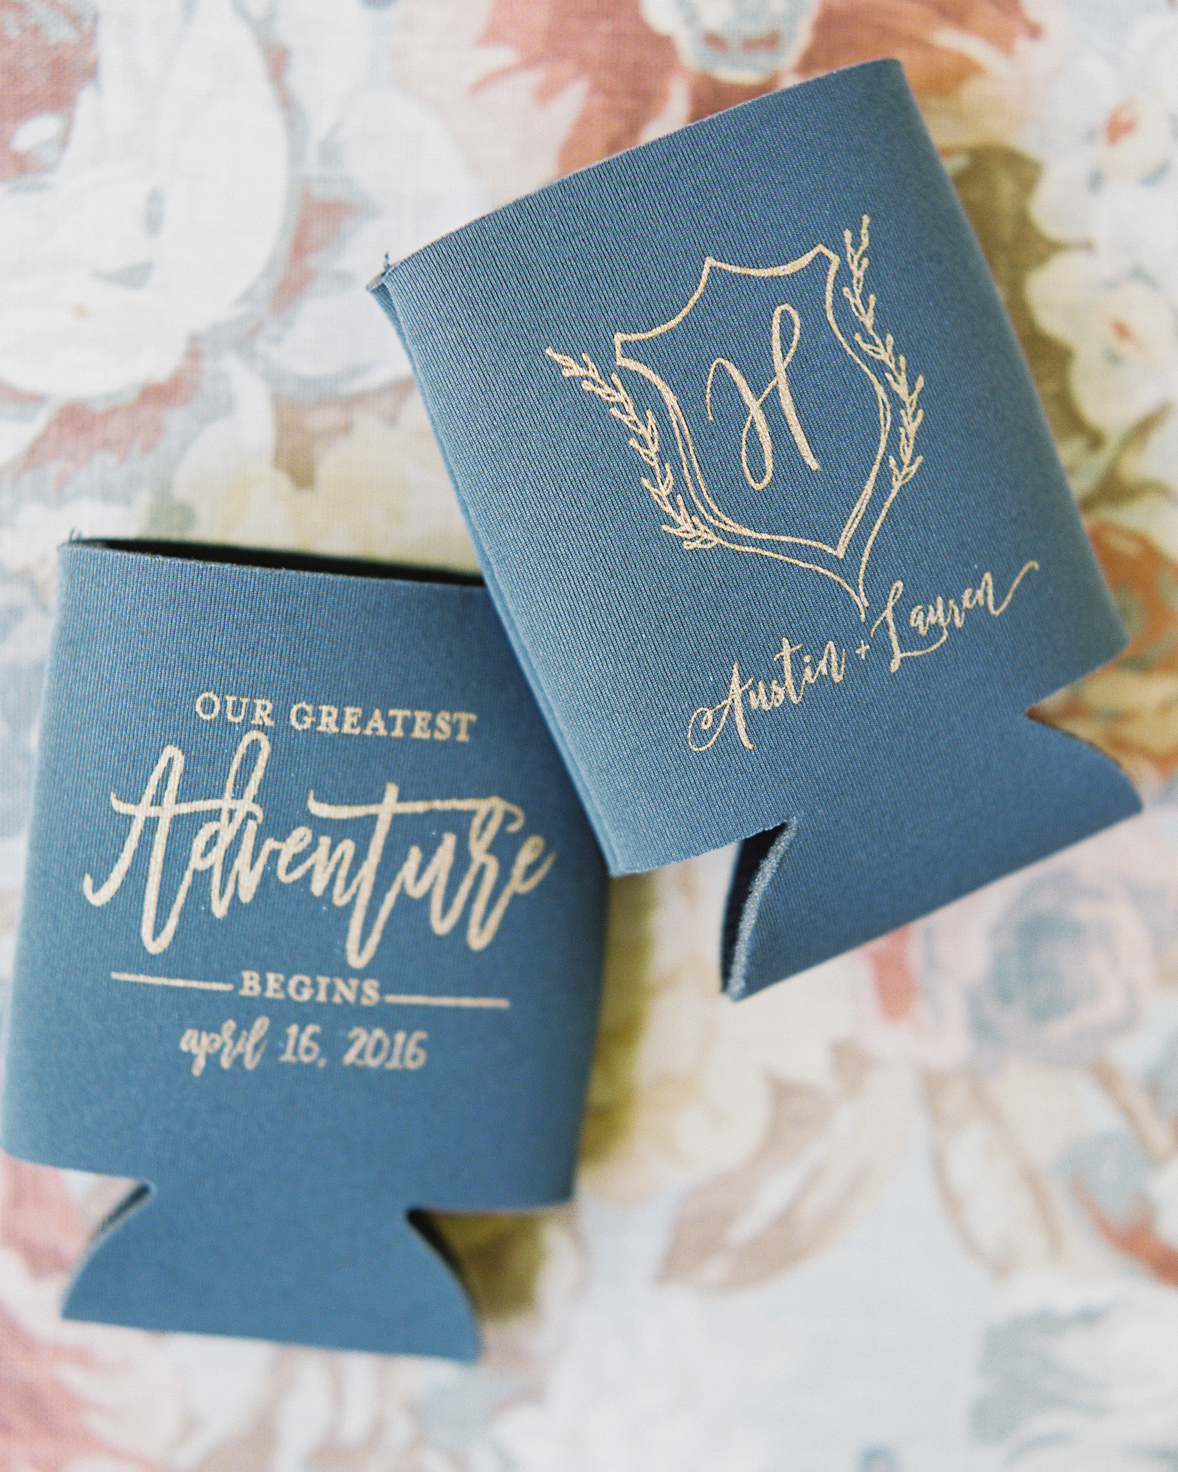 wedding after party monogramed koozies